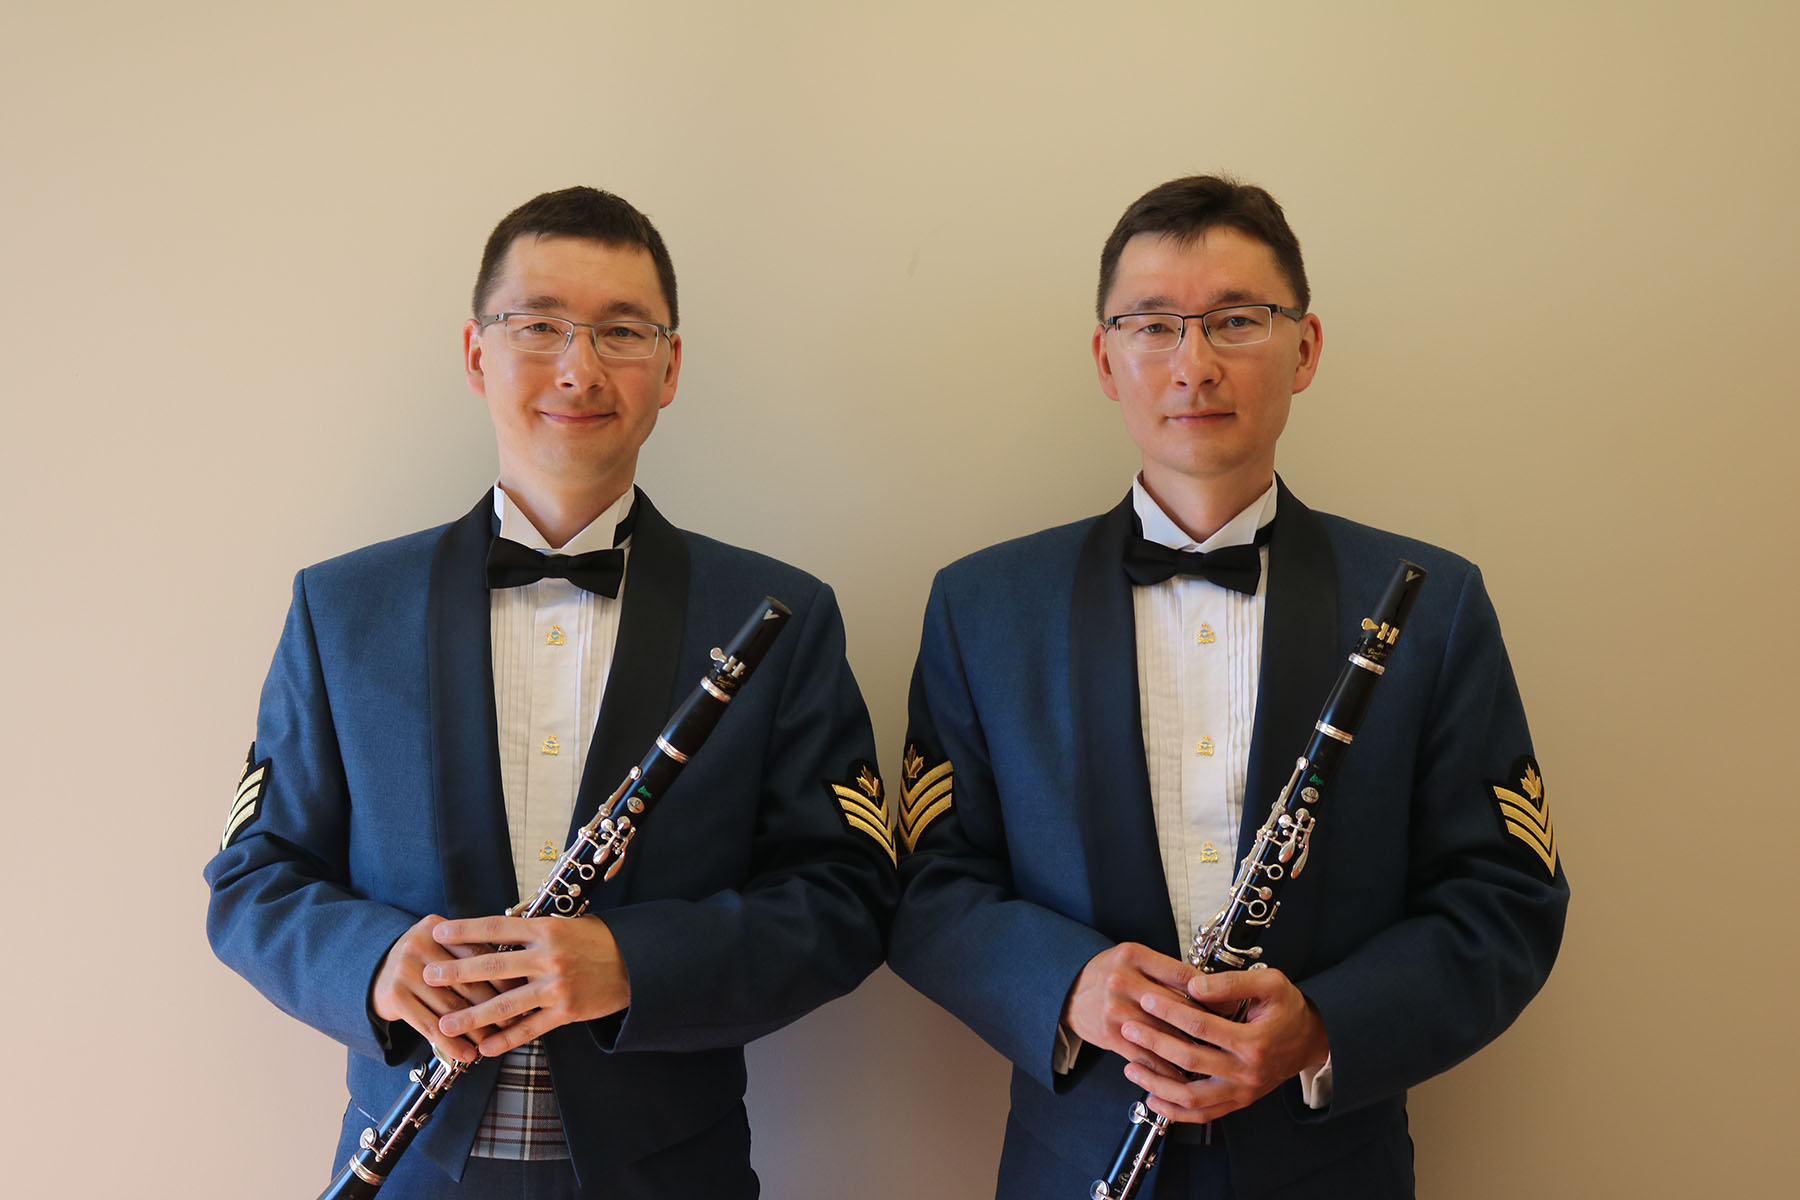 Two men who look alike, wearing blue uniforms, stand and hold a clarinet each.